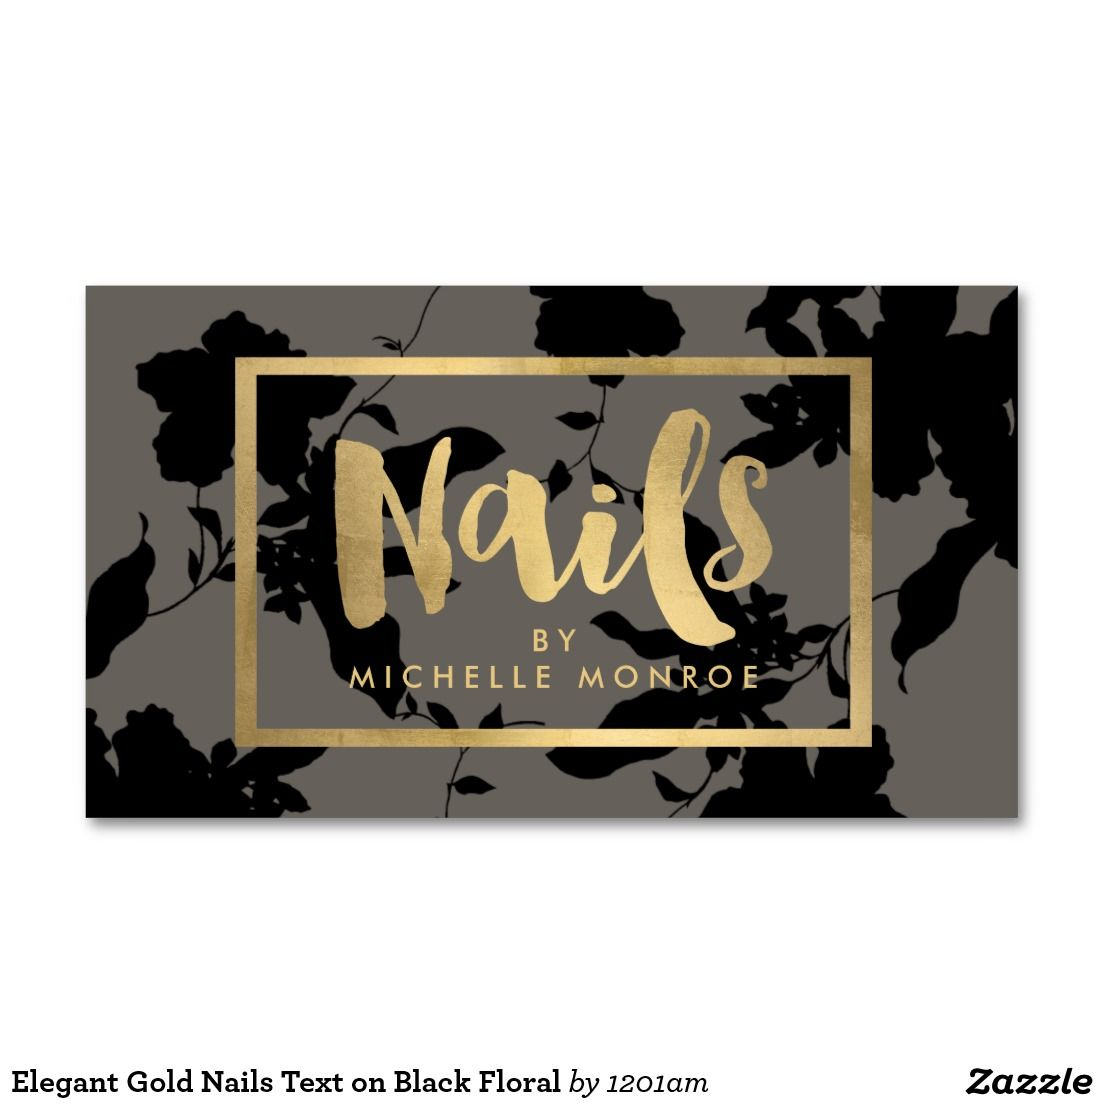 Black floral gold text nail salon gray business card nail studio chic floral and gold accents business cards for nail artists nail studios nail salons magicingreecefo Choice Image